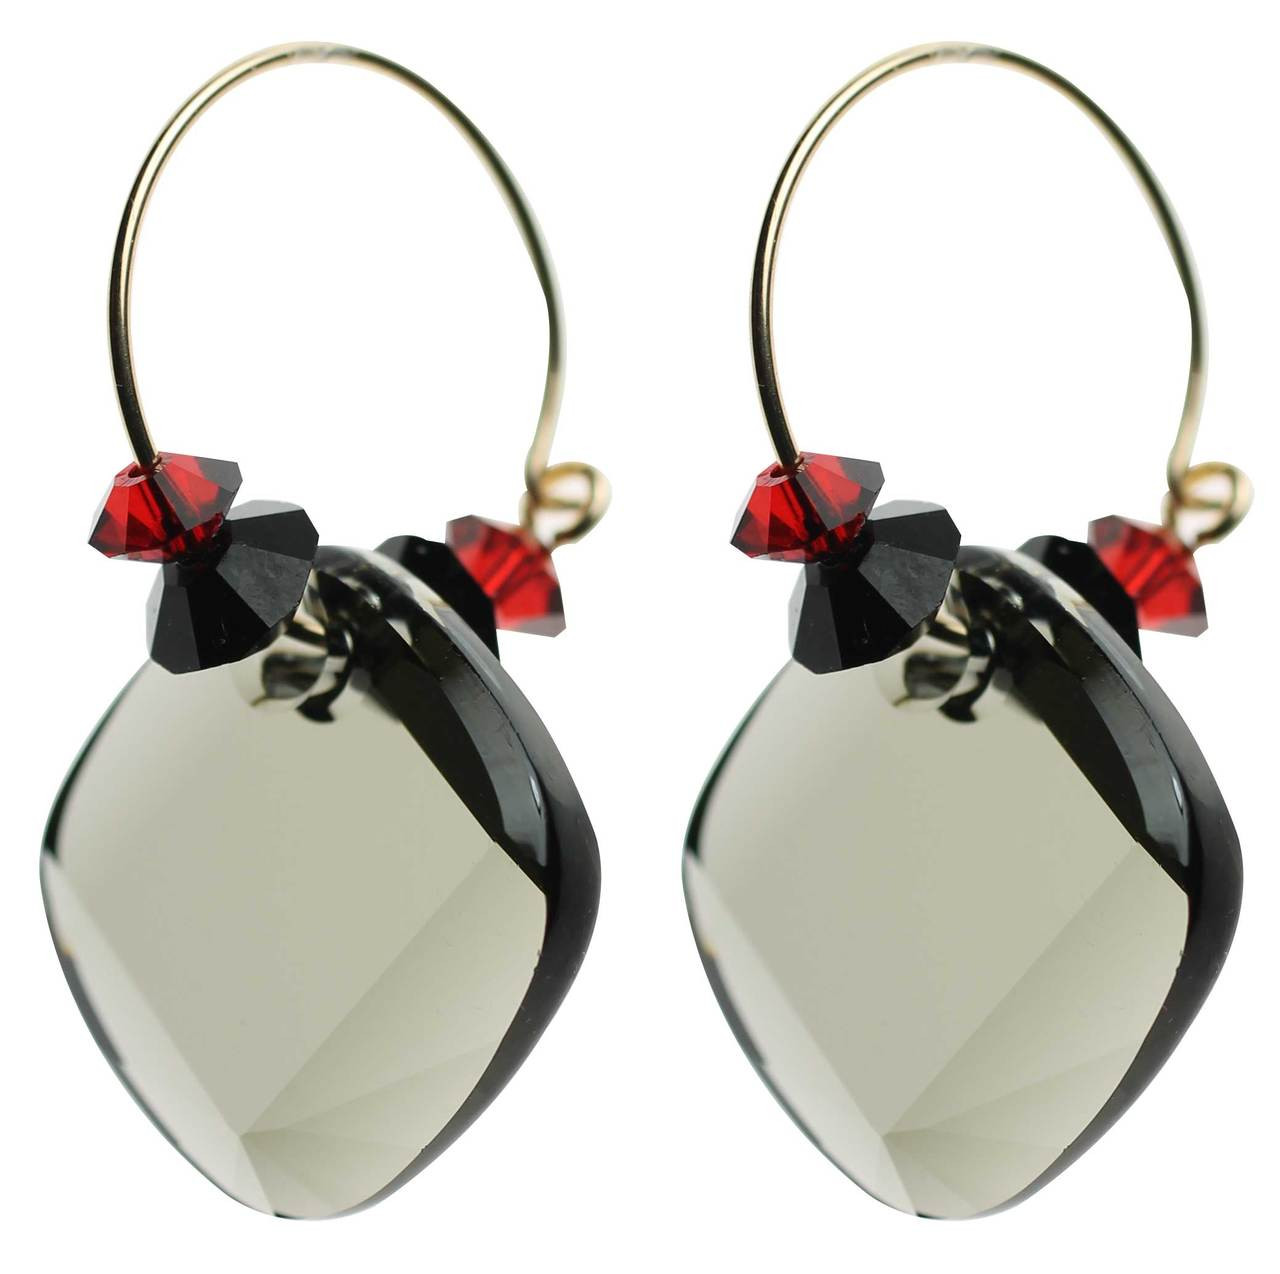 80cc767393d3f Black, Red & Grey Hoop Earrings • Modern and Vintage Crystals from  Swarovski • 14K Gold Filled Metal • Navajo Collection